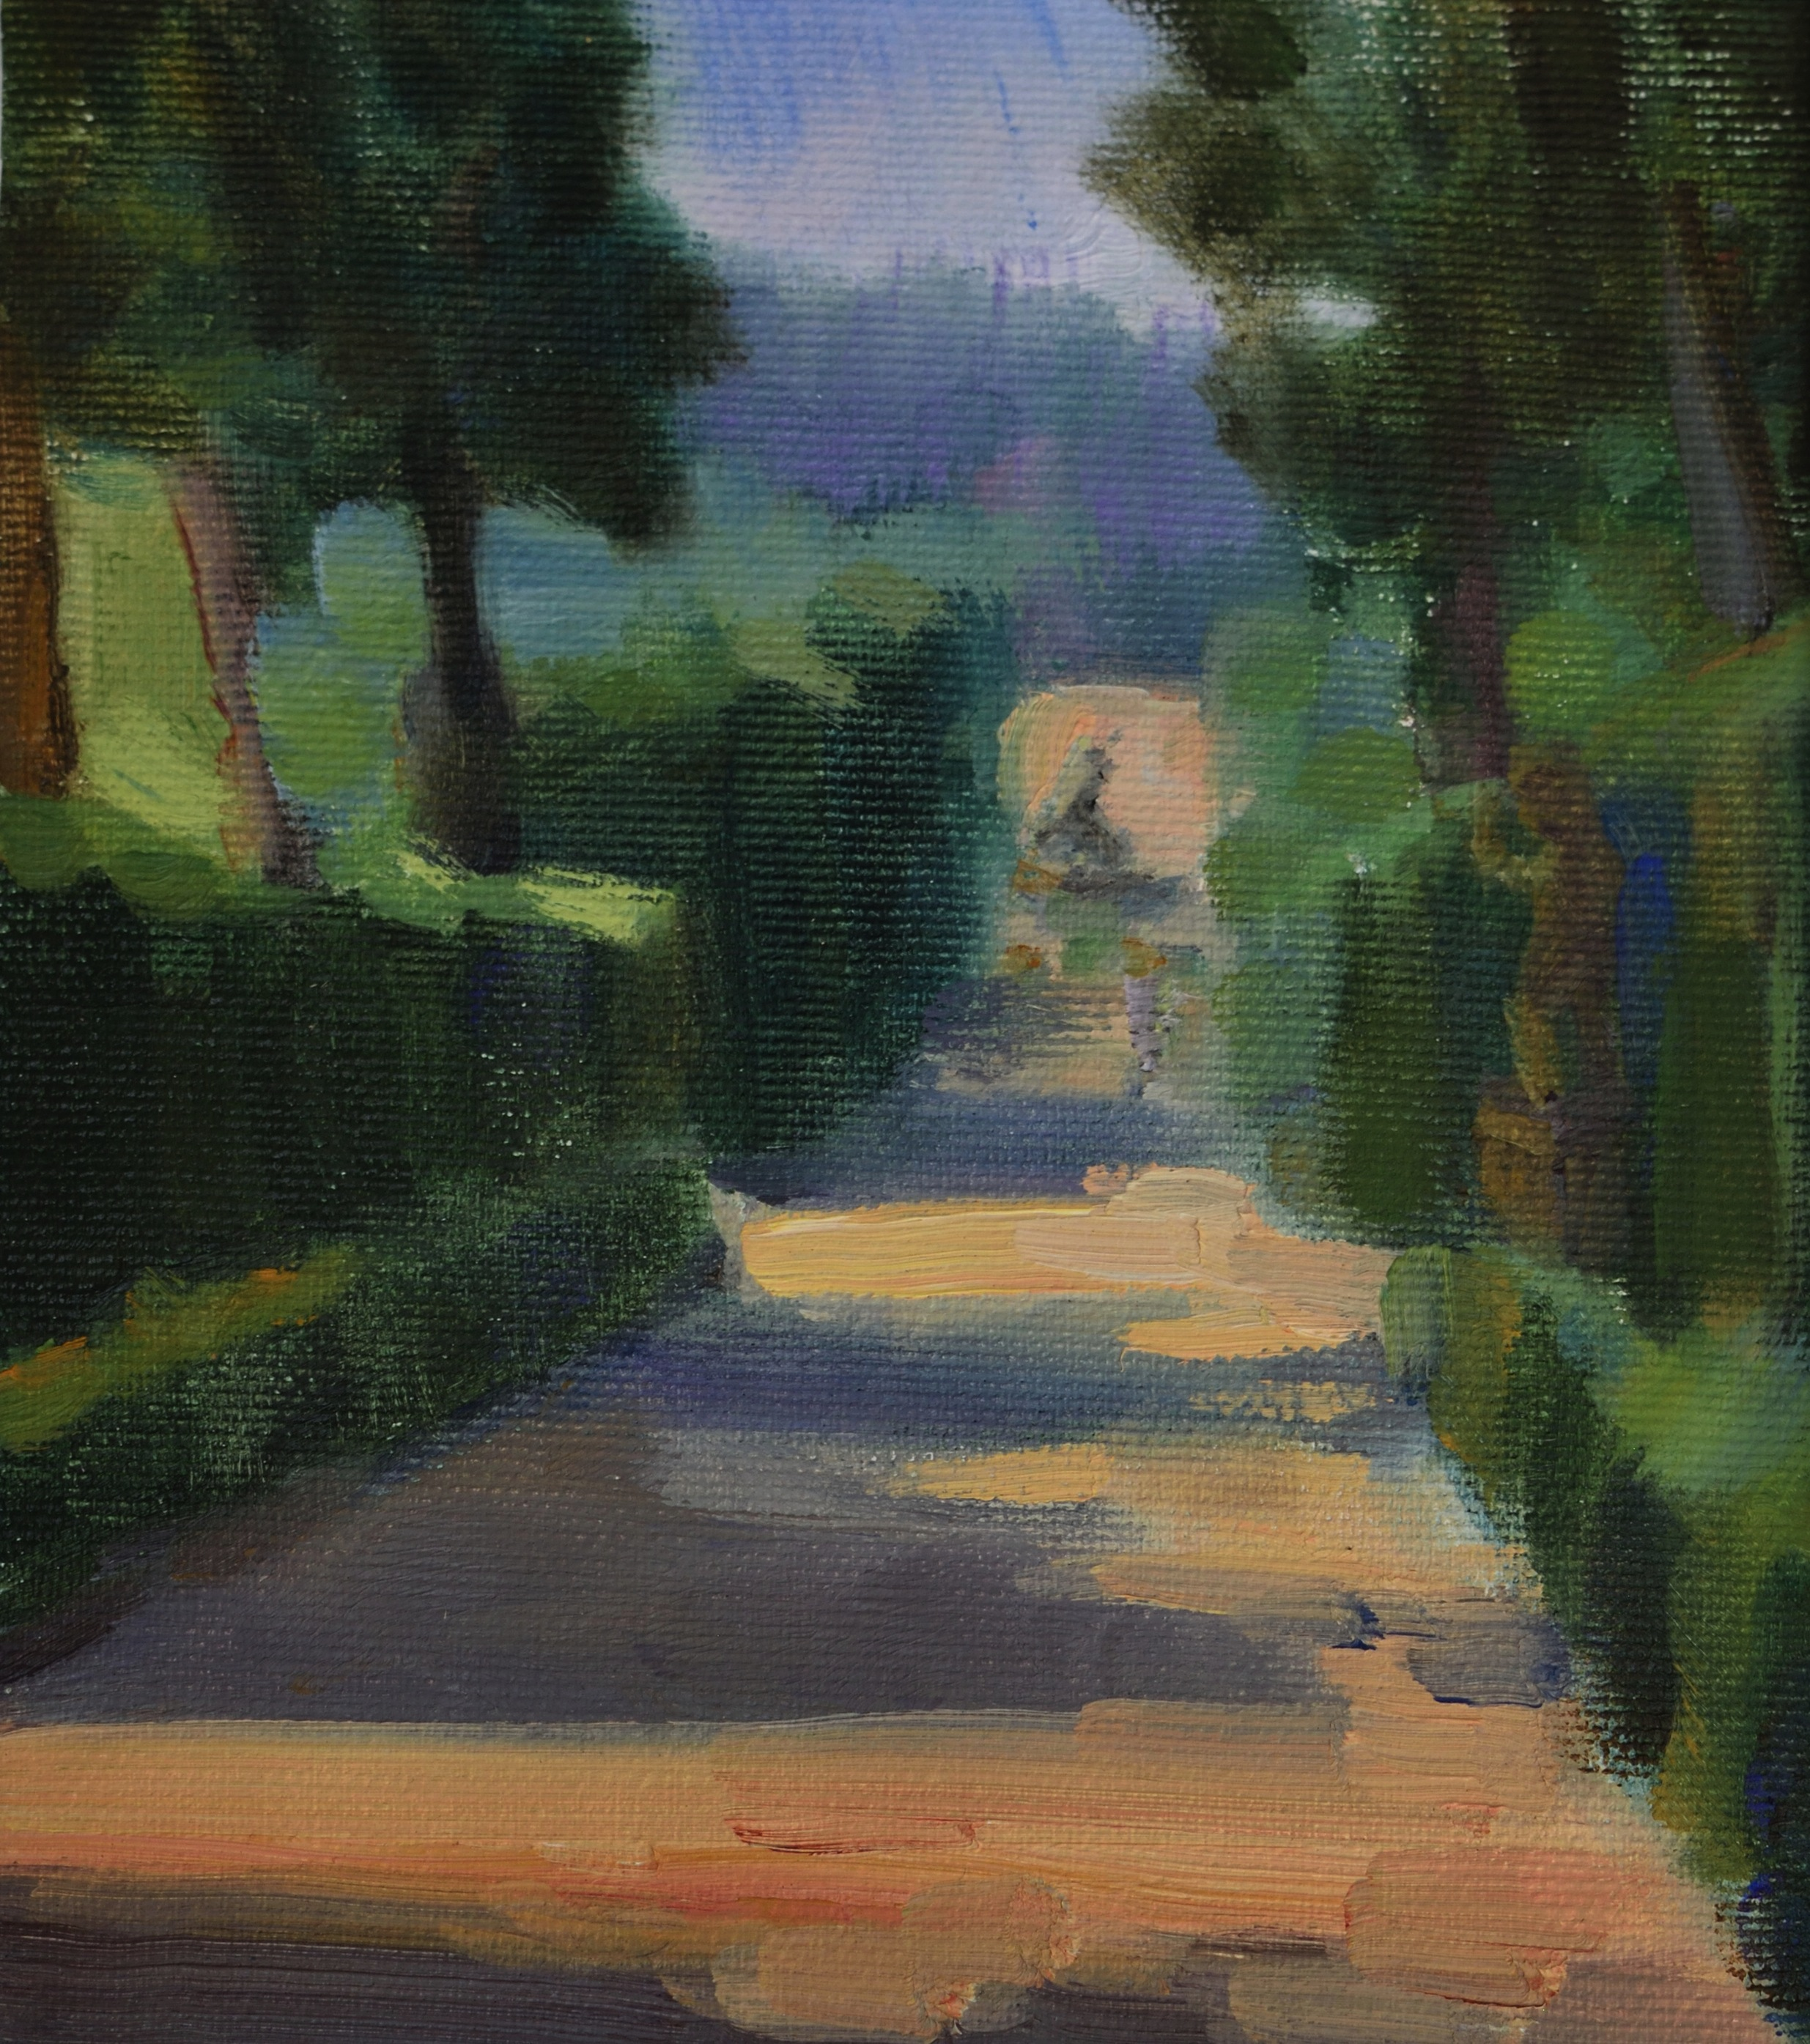 Viottolone di Boboli, oil on canvas, 25 x 20 cm, 2018